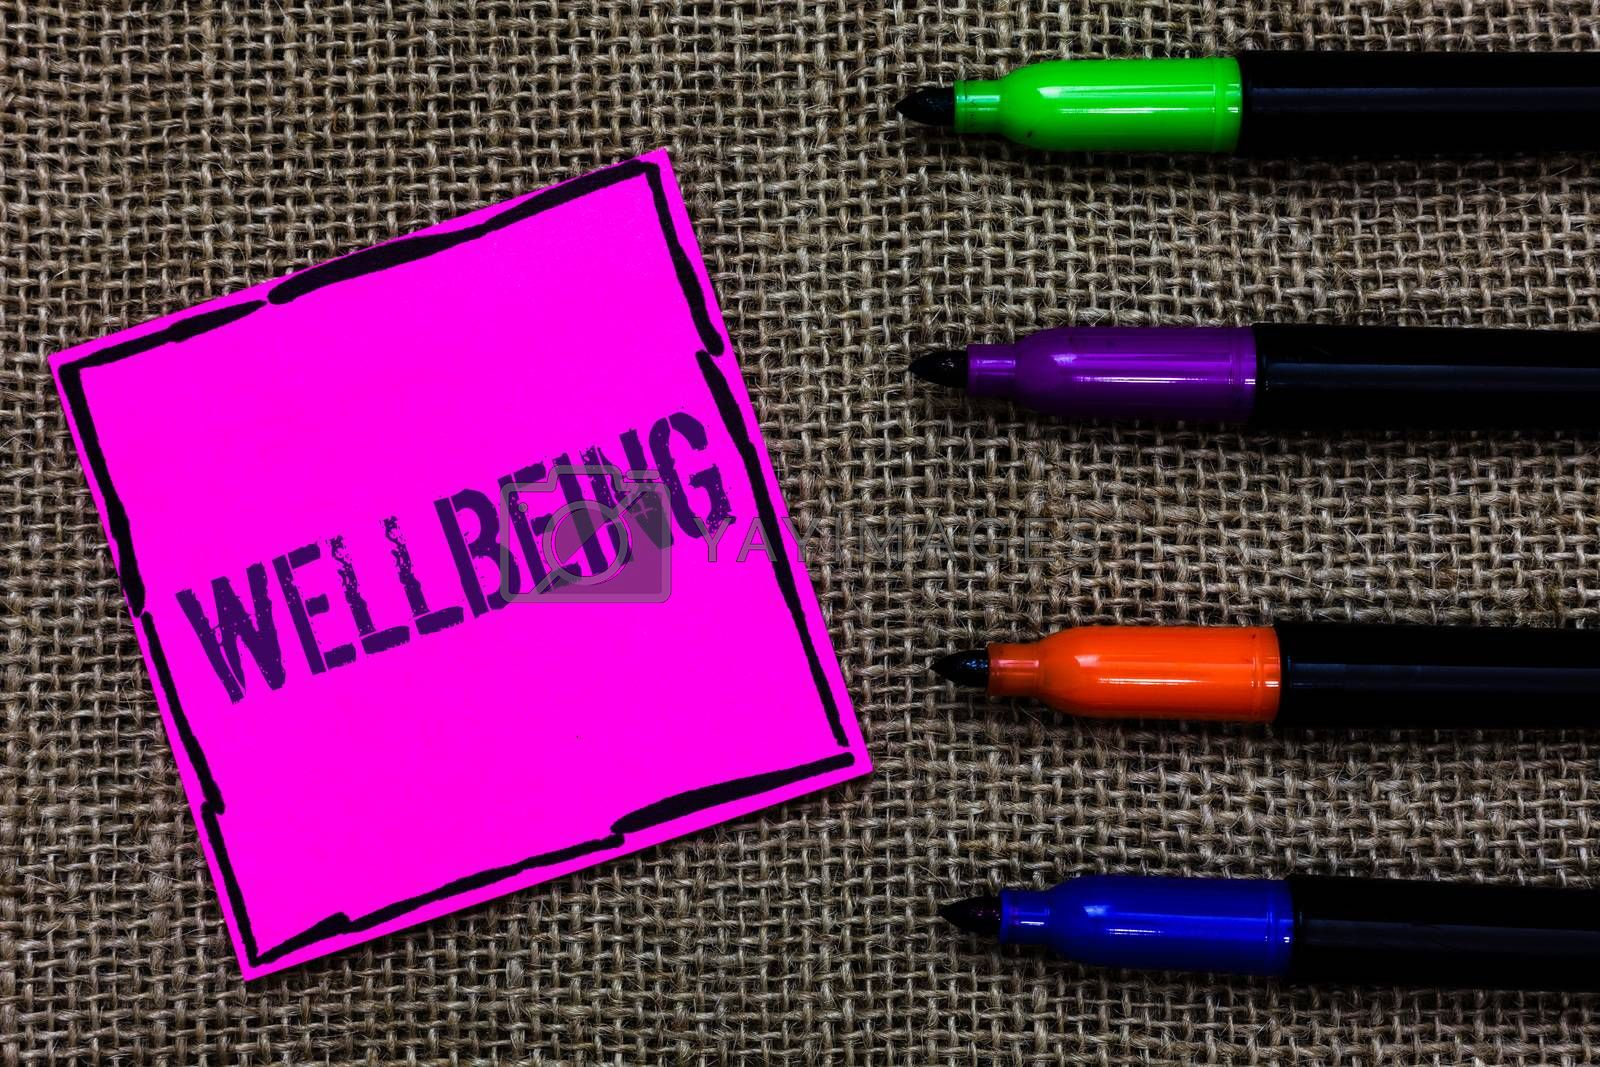 Writing note showing Wellbeing. Business photo showcasing Healthy lifestyle conditions of people life work balance Marker pens art pink paper nice mat love thought black shadow memories